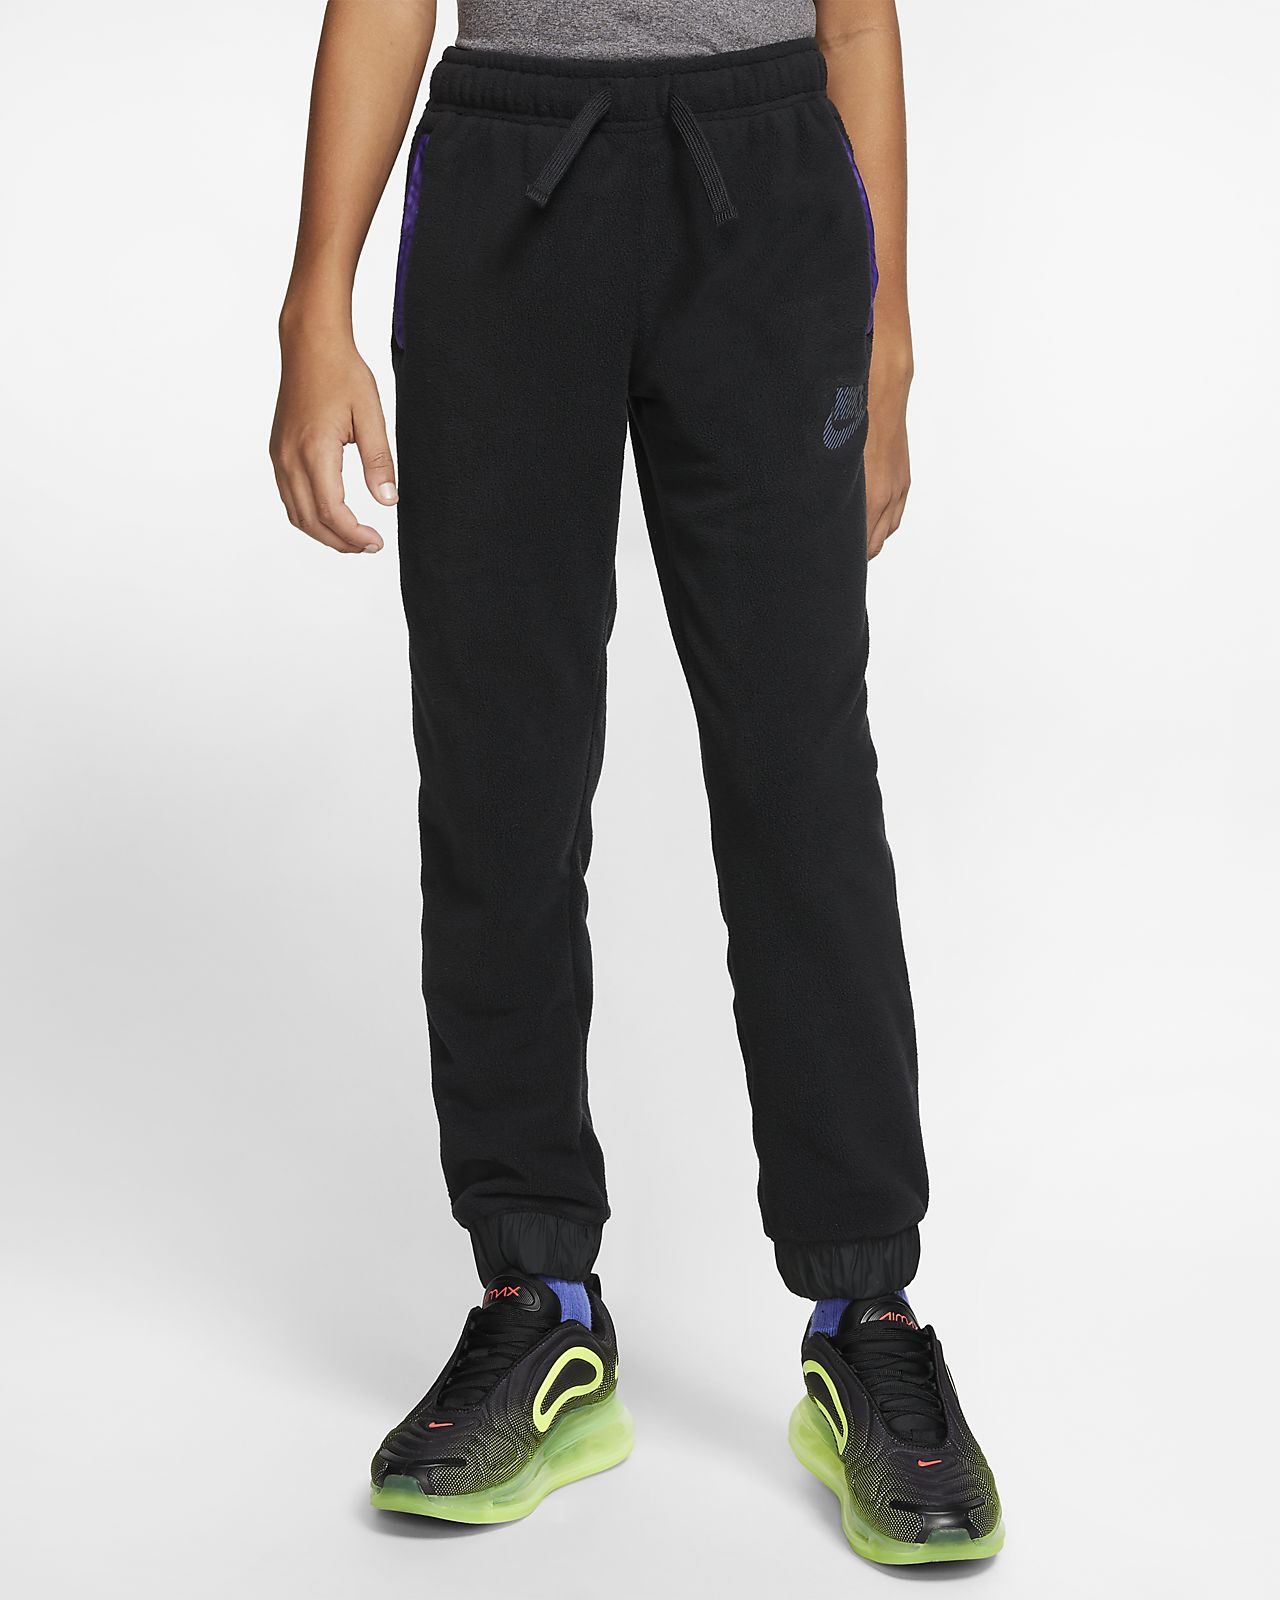 Nike Sportswear Winterized Older Kids' (Boys') Trousers